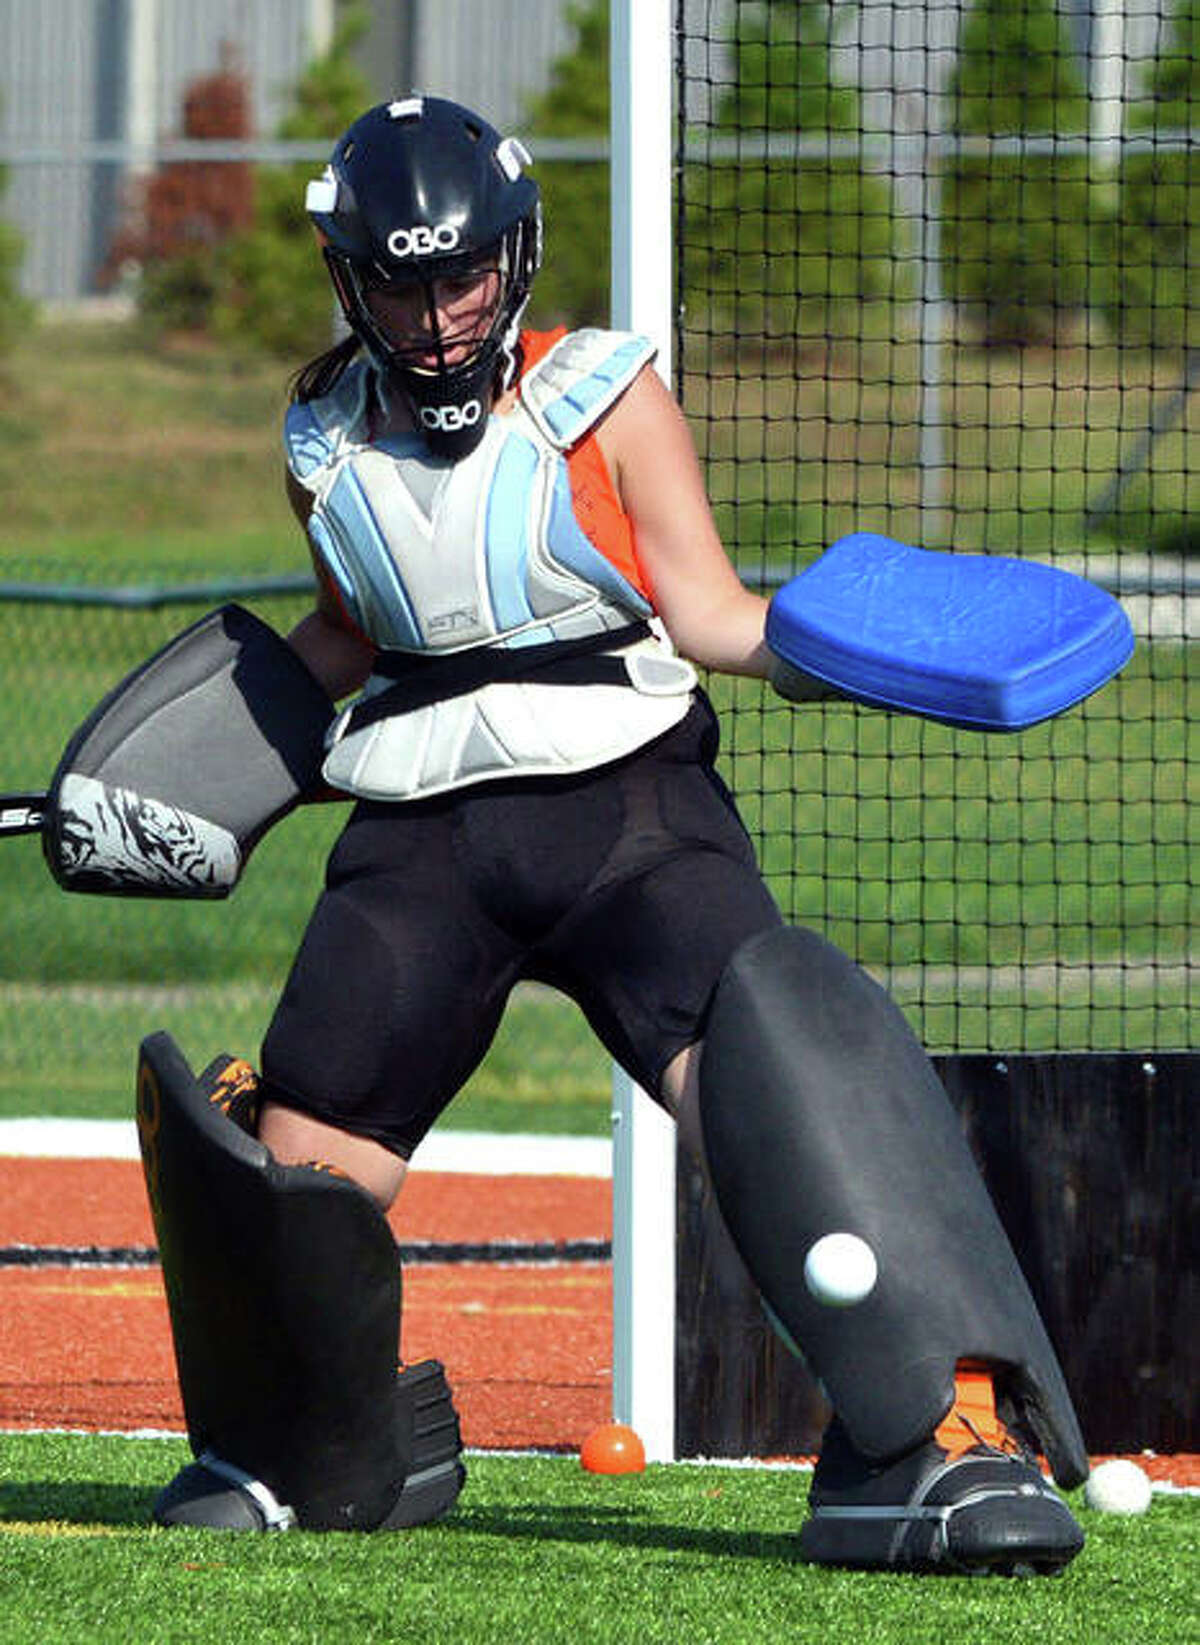 Edwardsville goalie Leah Griffin makes a kick save during practice last week. Griffin, a senior, is a first-year starter.